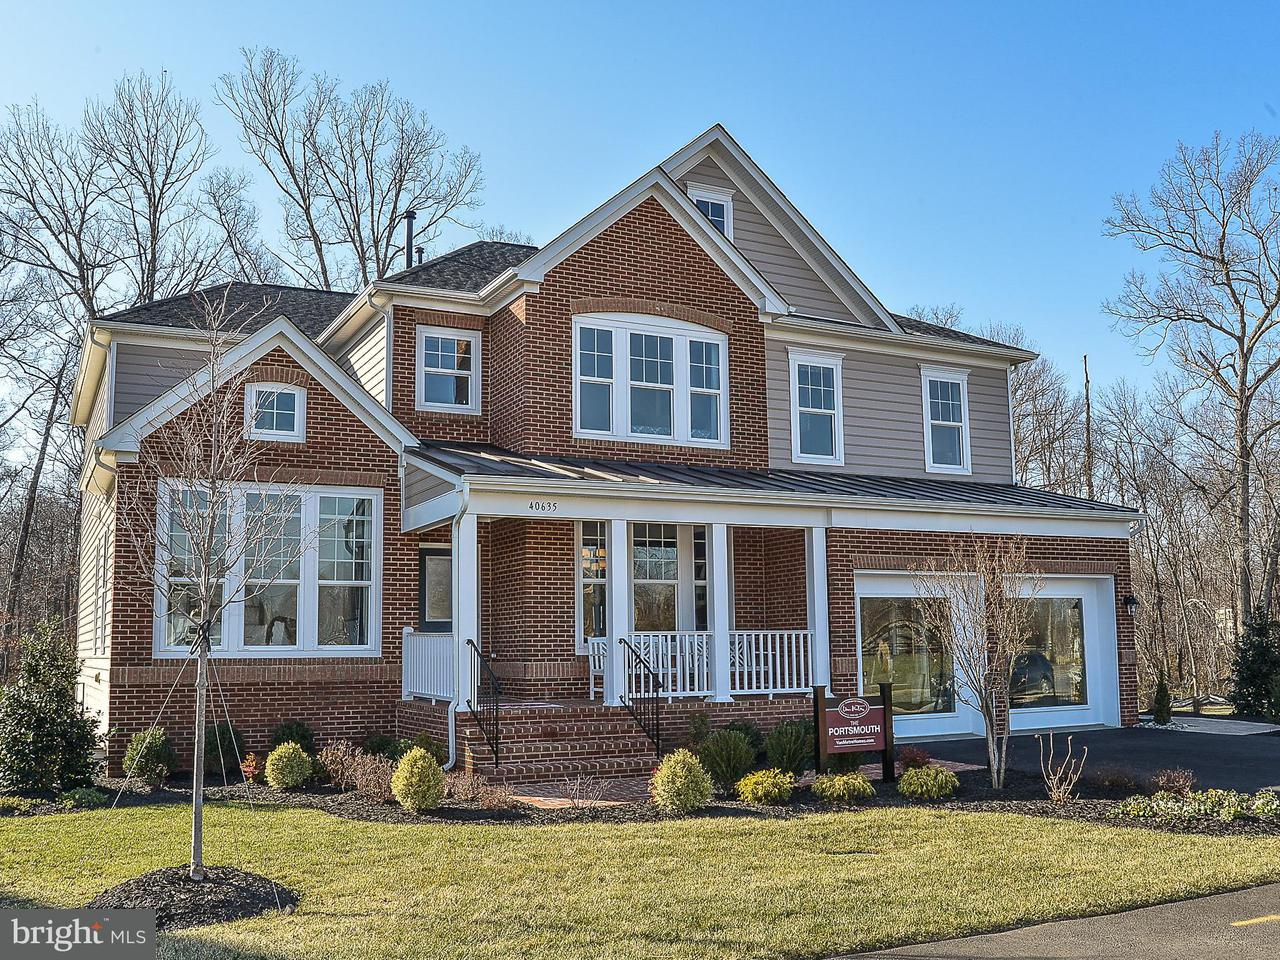 Single Family Home for Sale at 50114 BIRNAM WOOD Place 50114 BIRNAM WOOD Place Ashburn, Virginia 20148 United States